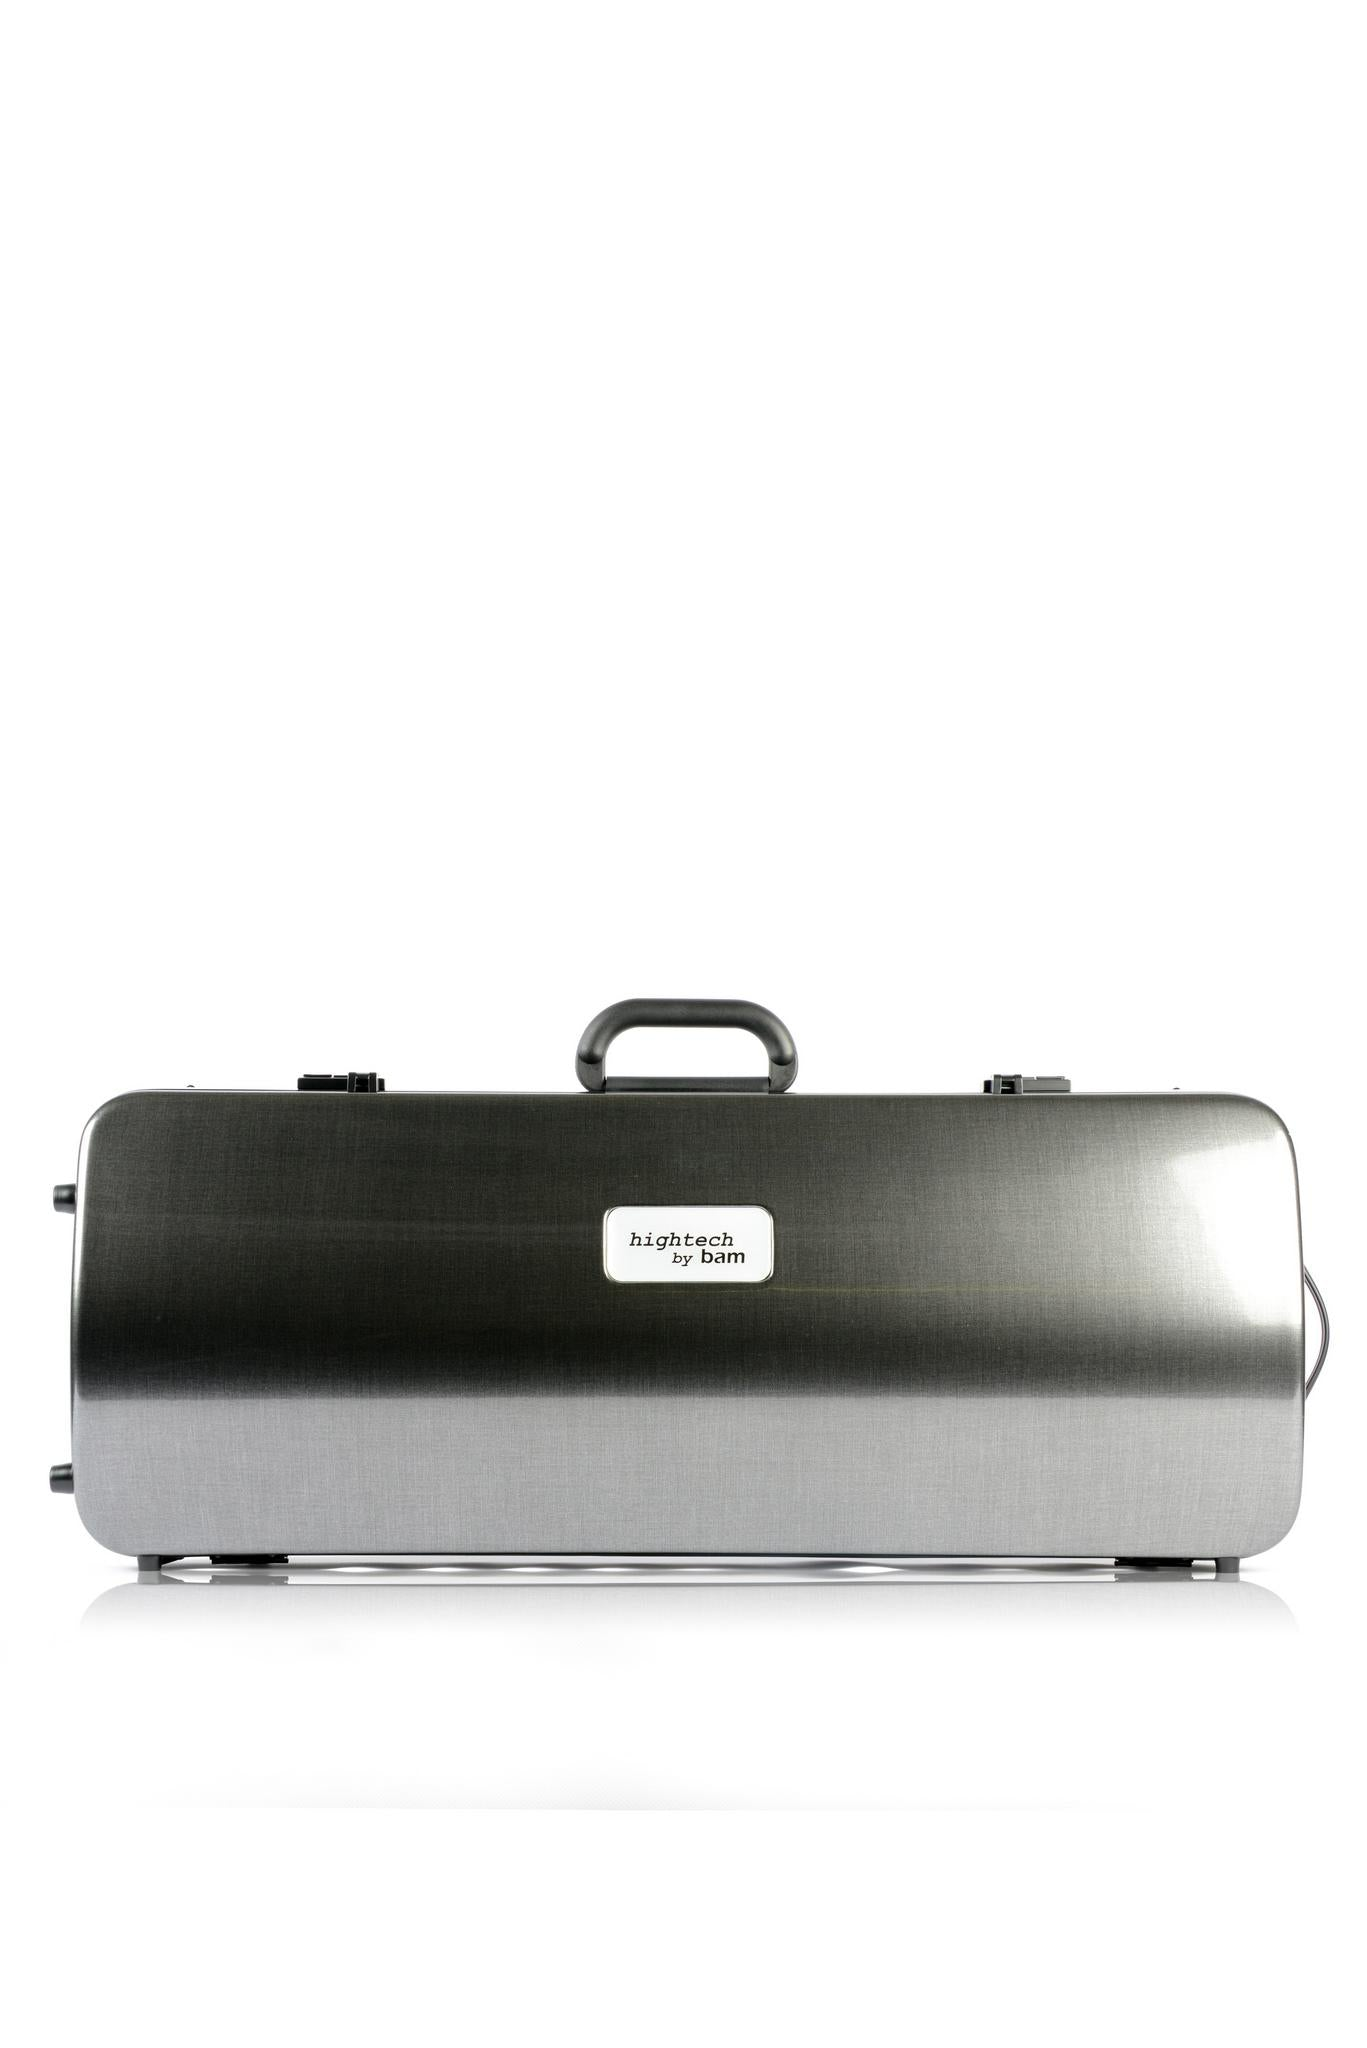 BAM HIGHTECH Two Violin Case